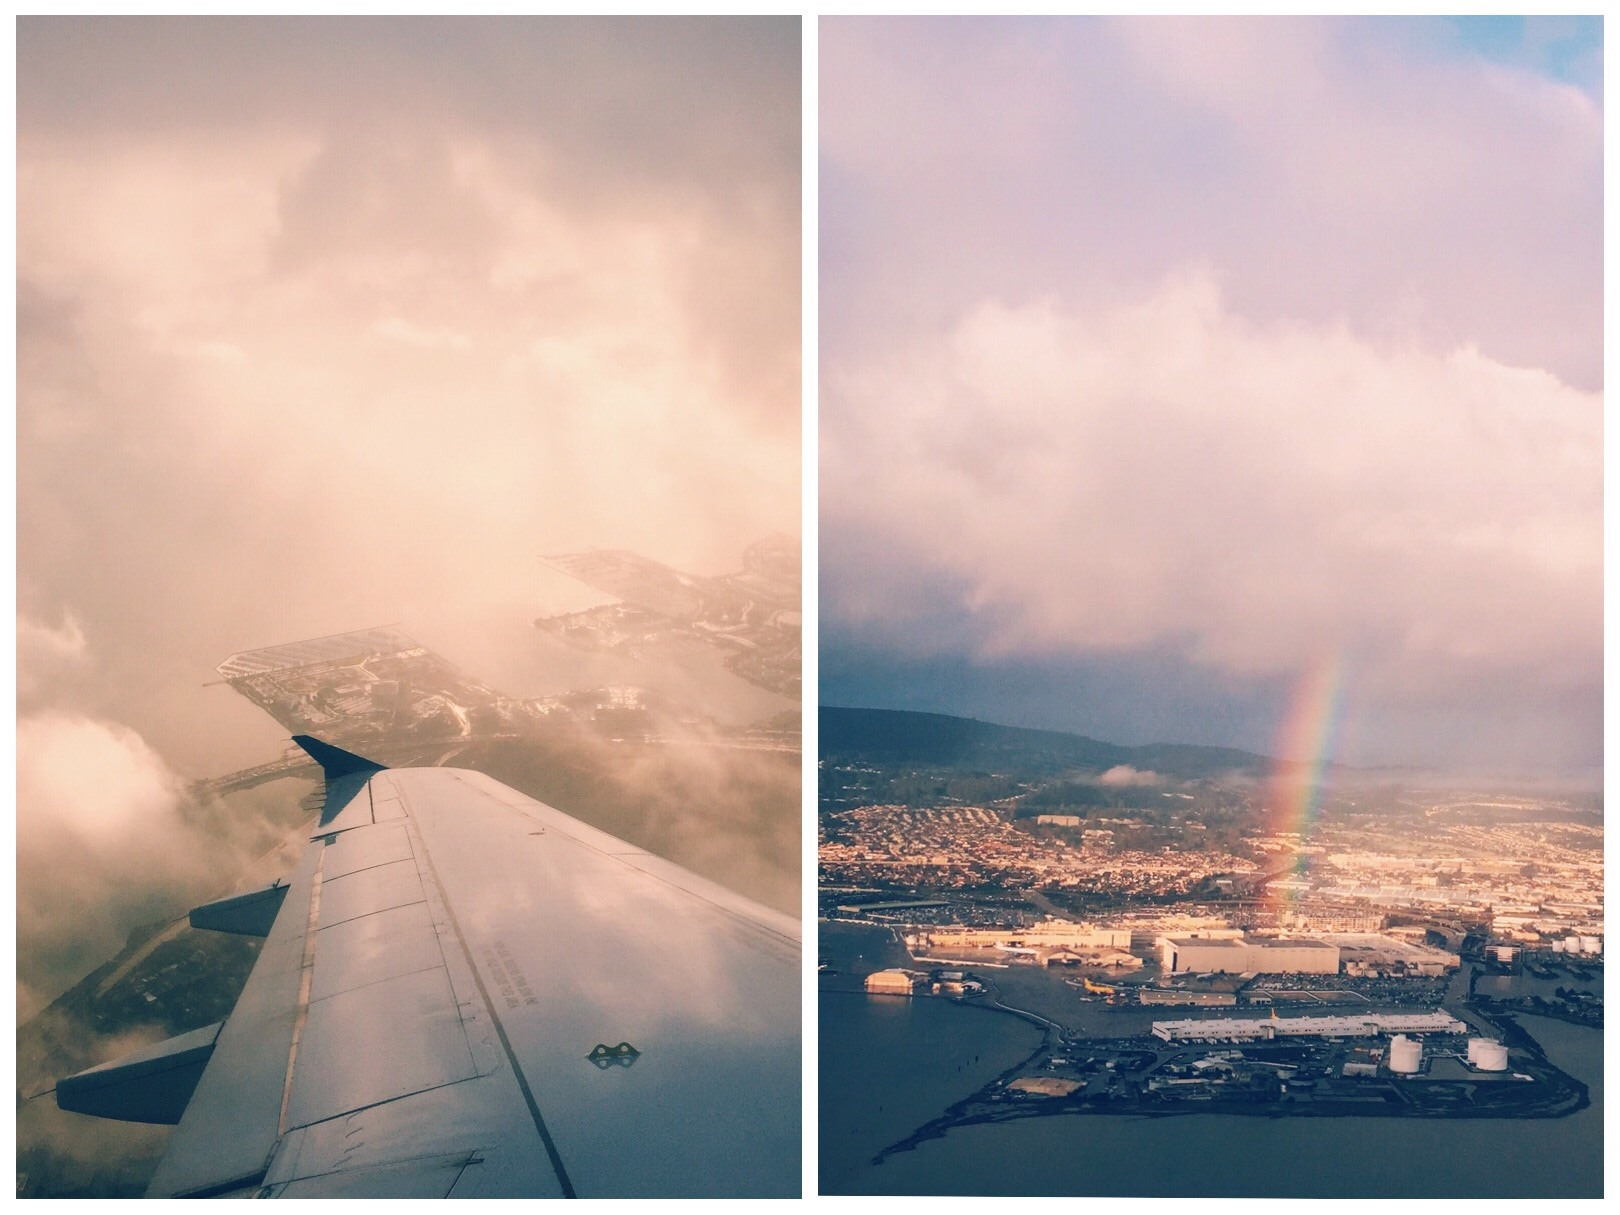 Golden sunrise and rainbows over SFO